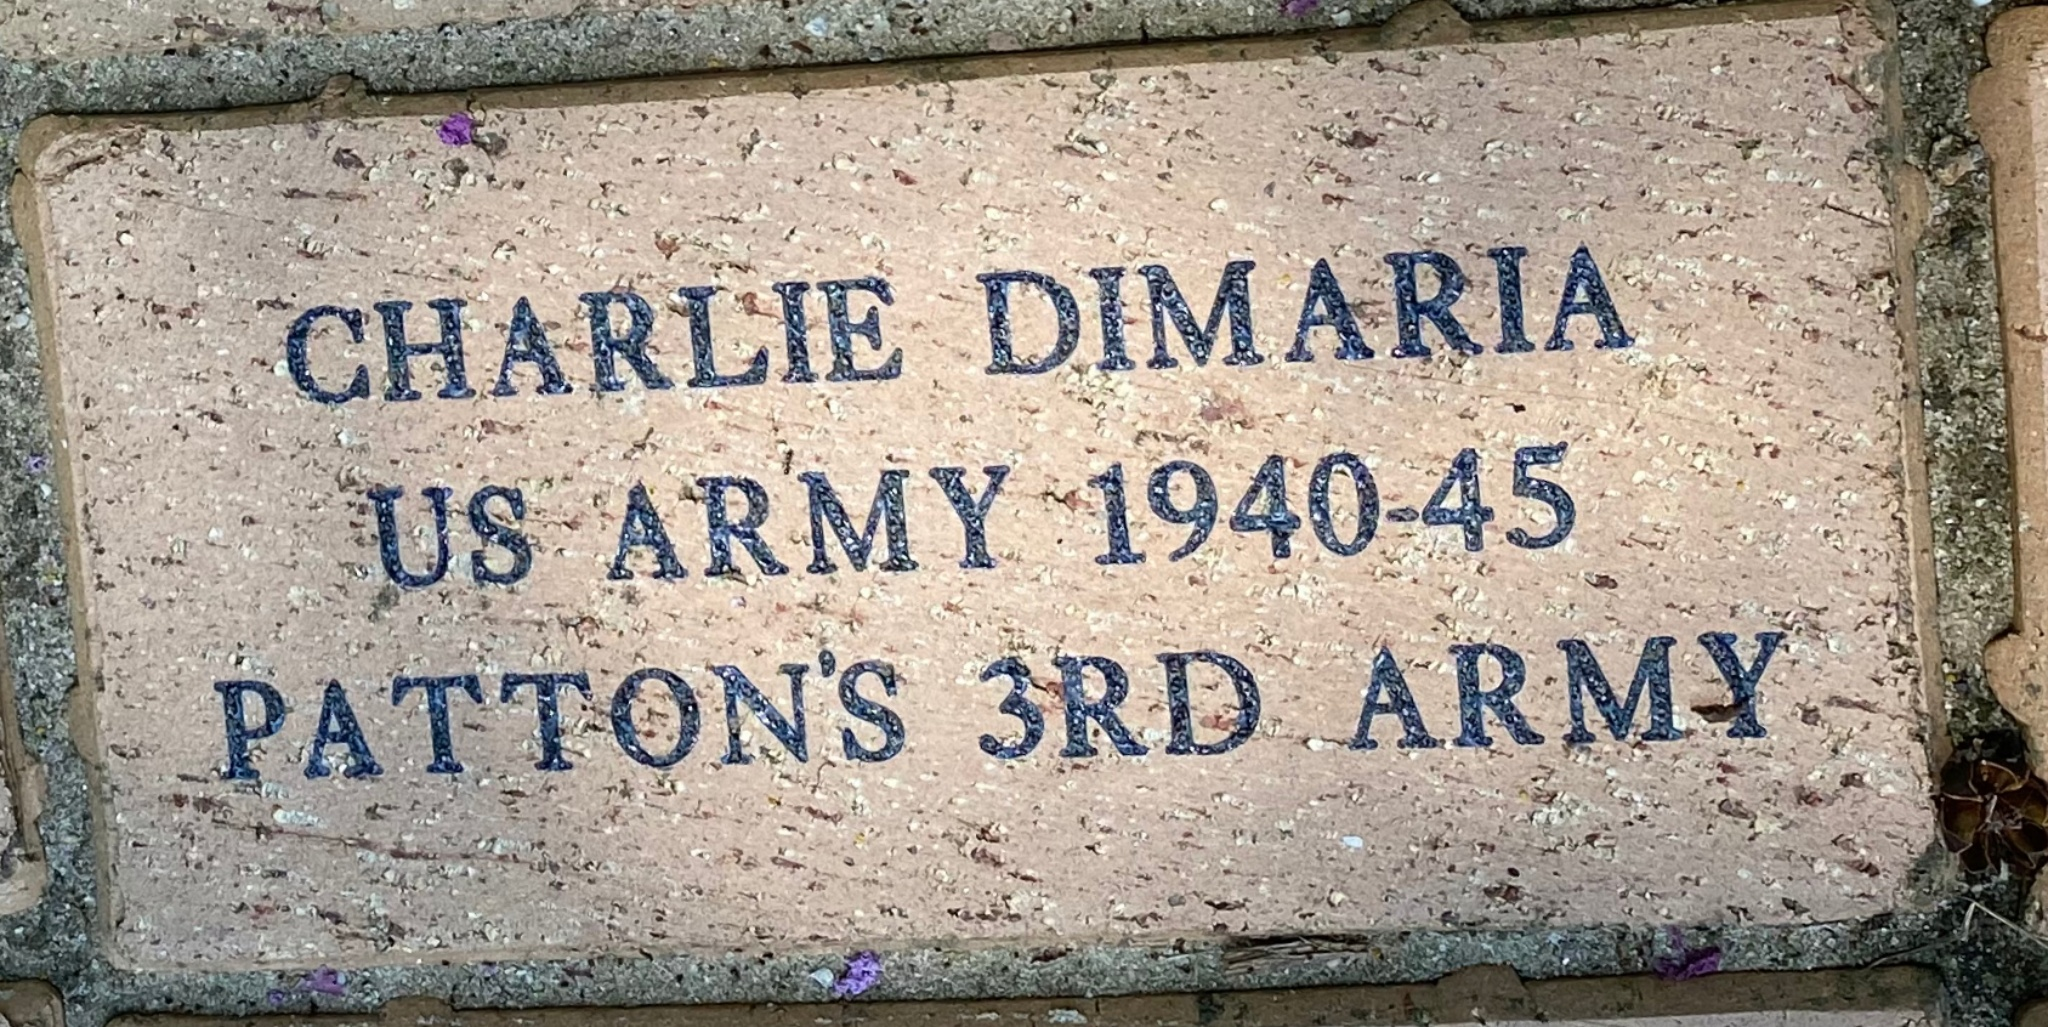 CHARLIE DIMARIA US ARMY 1940-45 PATTON'S 3RD ARMY